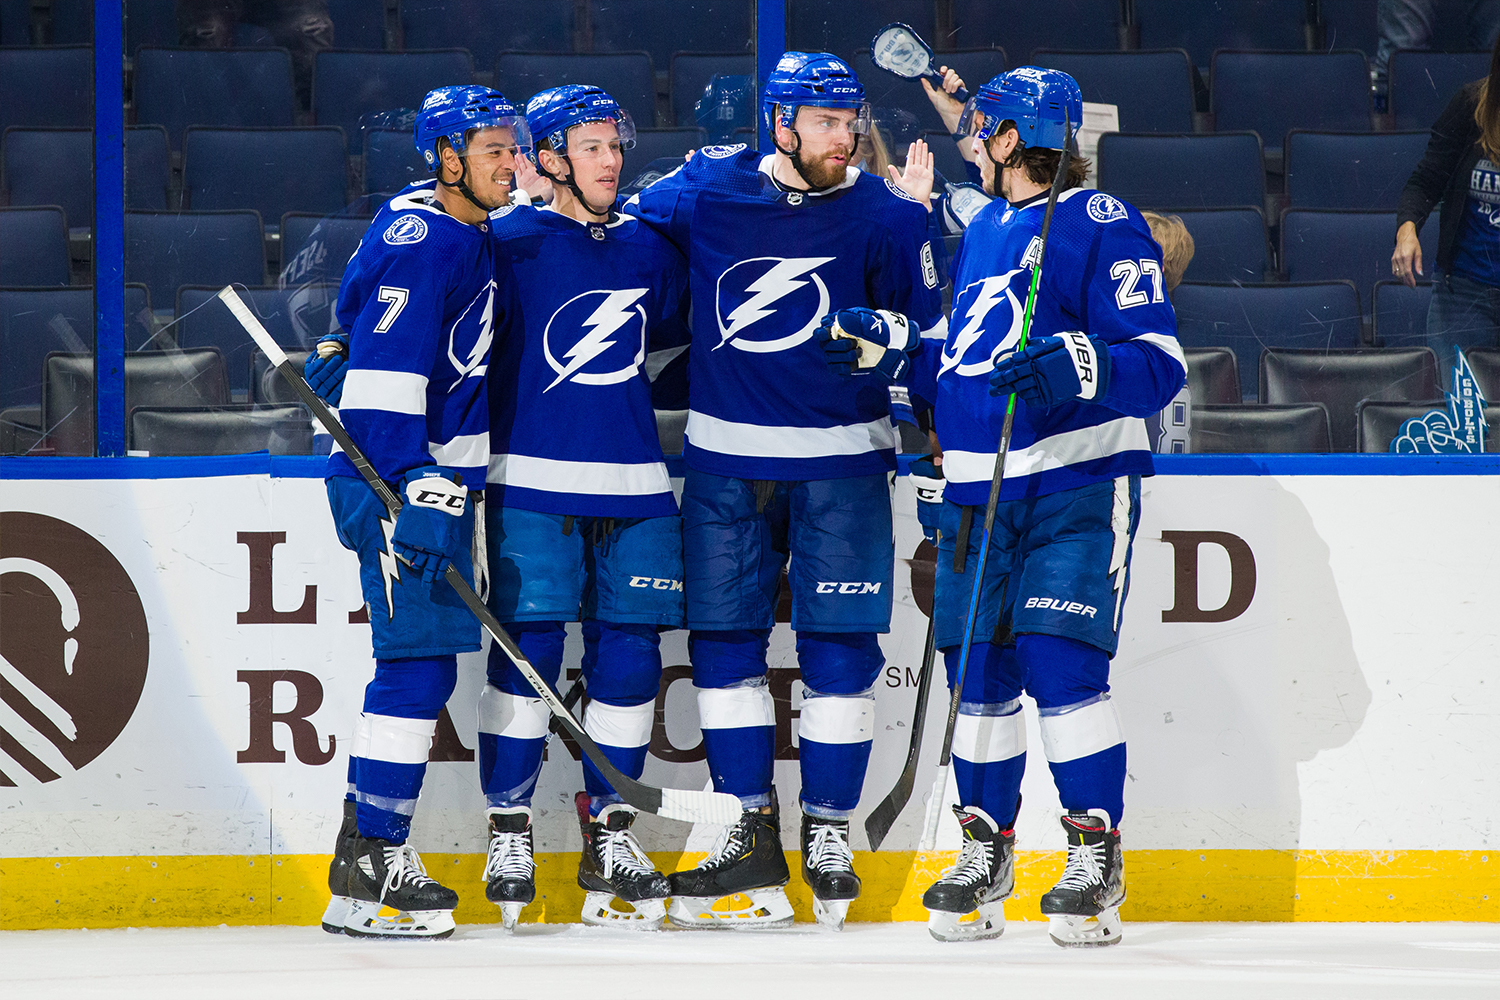 Ross Colton #79 of the Tampa Bay Lightning celebrates his goal with teammates Mathieu Joseph #7, Erik Cernak #81, and Ryan McDonagh #27 against the Dallas Stars during the third period at Amalie Arena on May 5, 2021